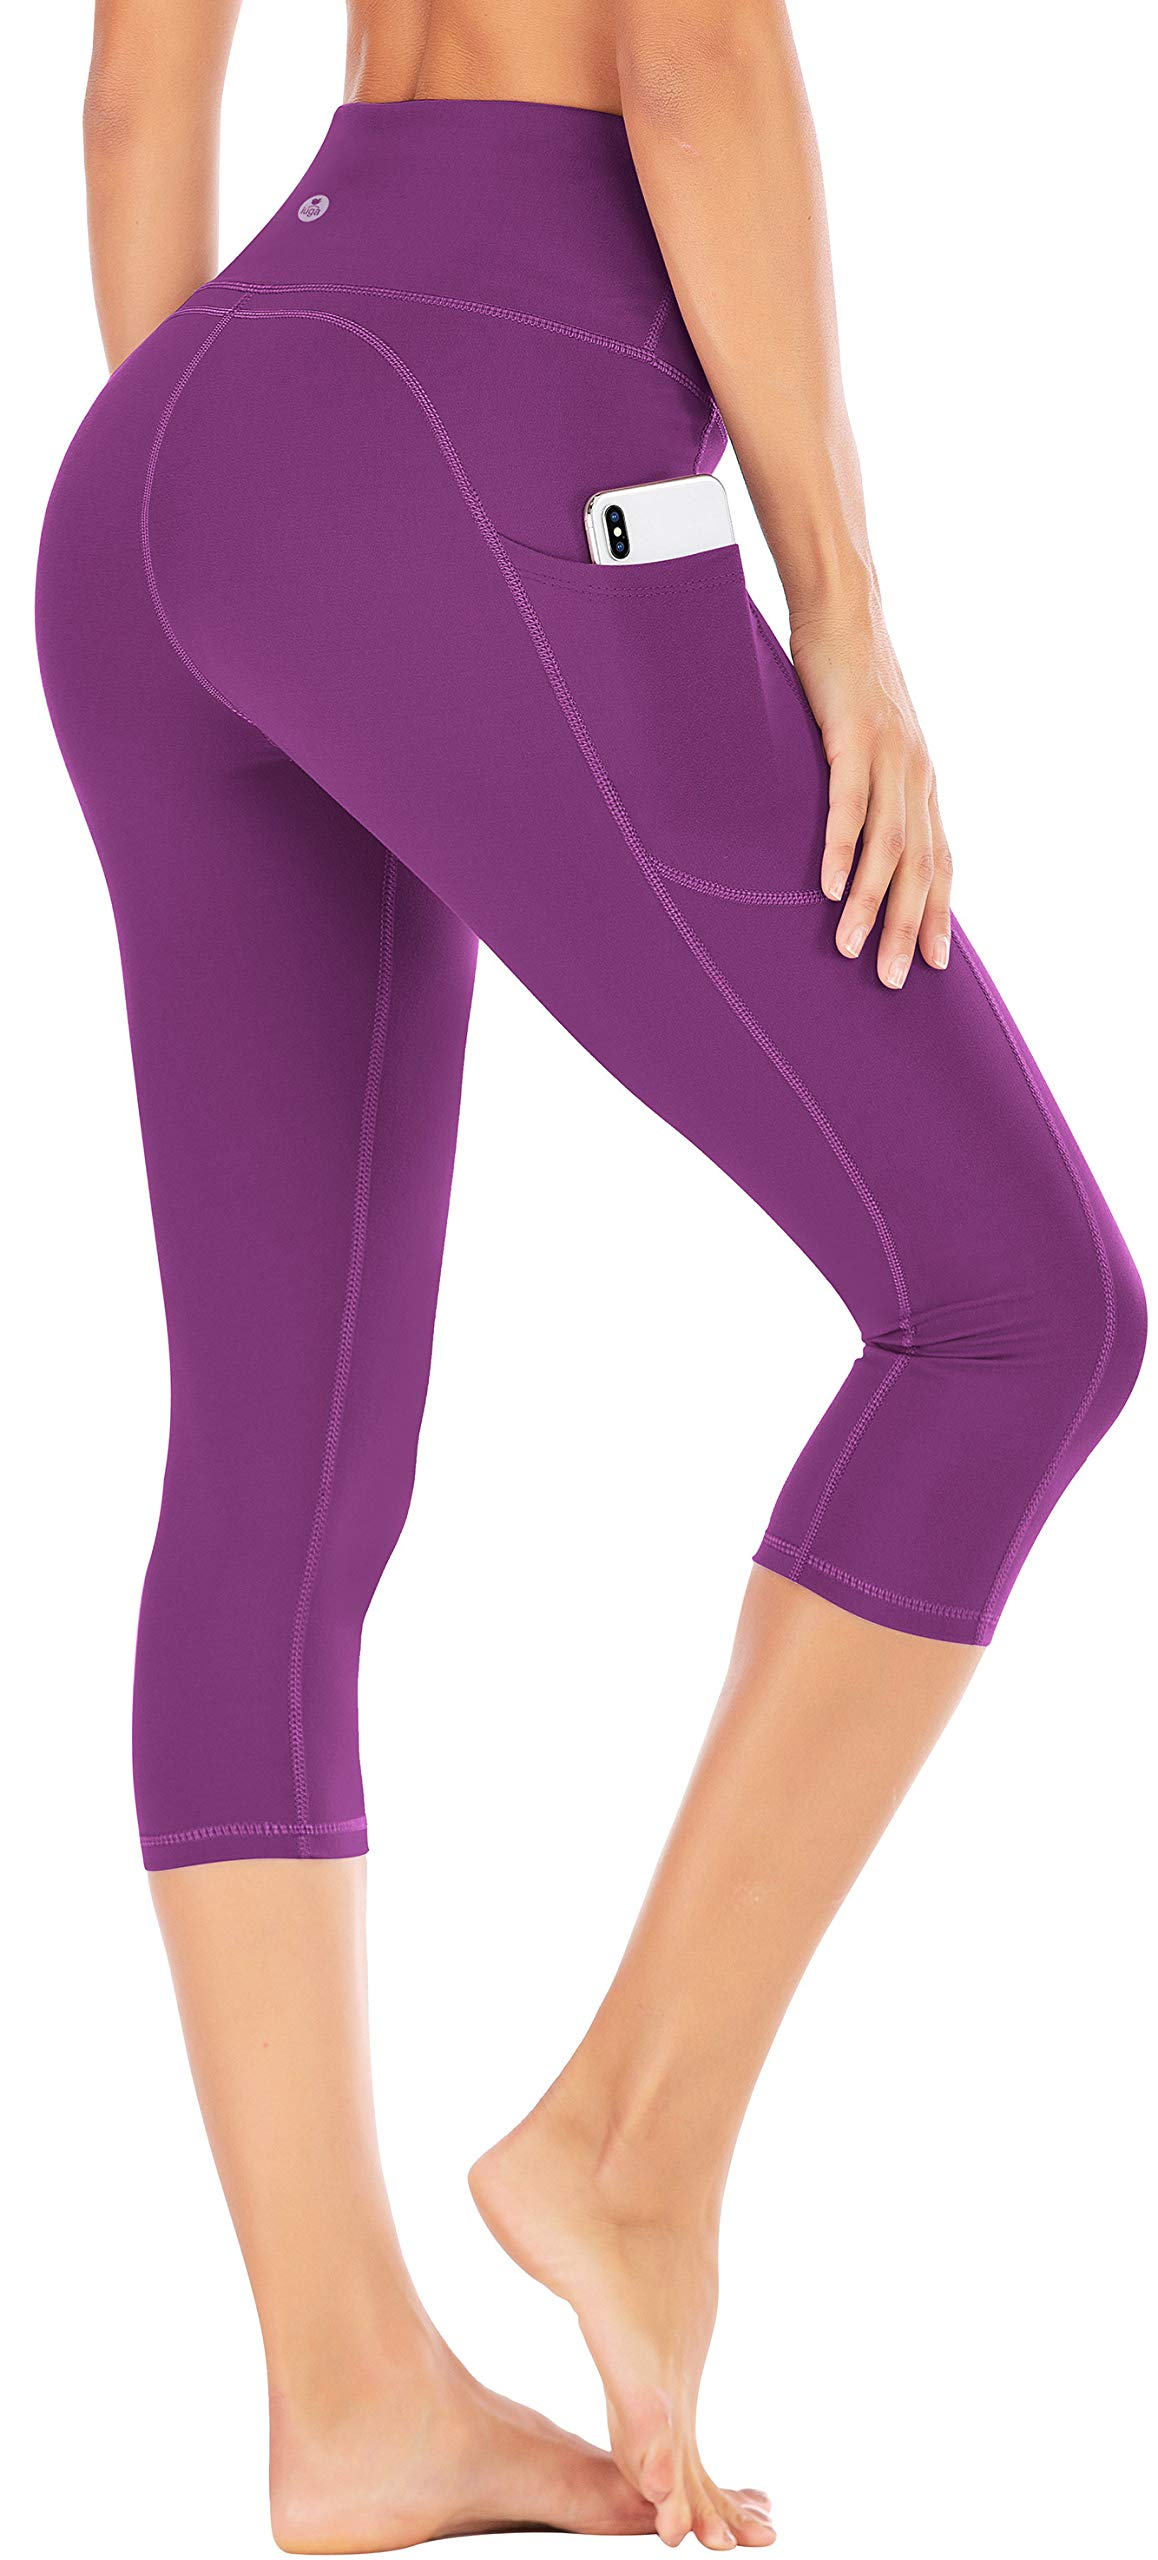 IUGA High Waist Yoga Pants with Pockets, Tummy Control Yoga Capris for Women, 4 Way Stretch Capri Leggings with Pockets(Purple, XS) by IUGA